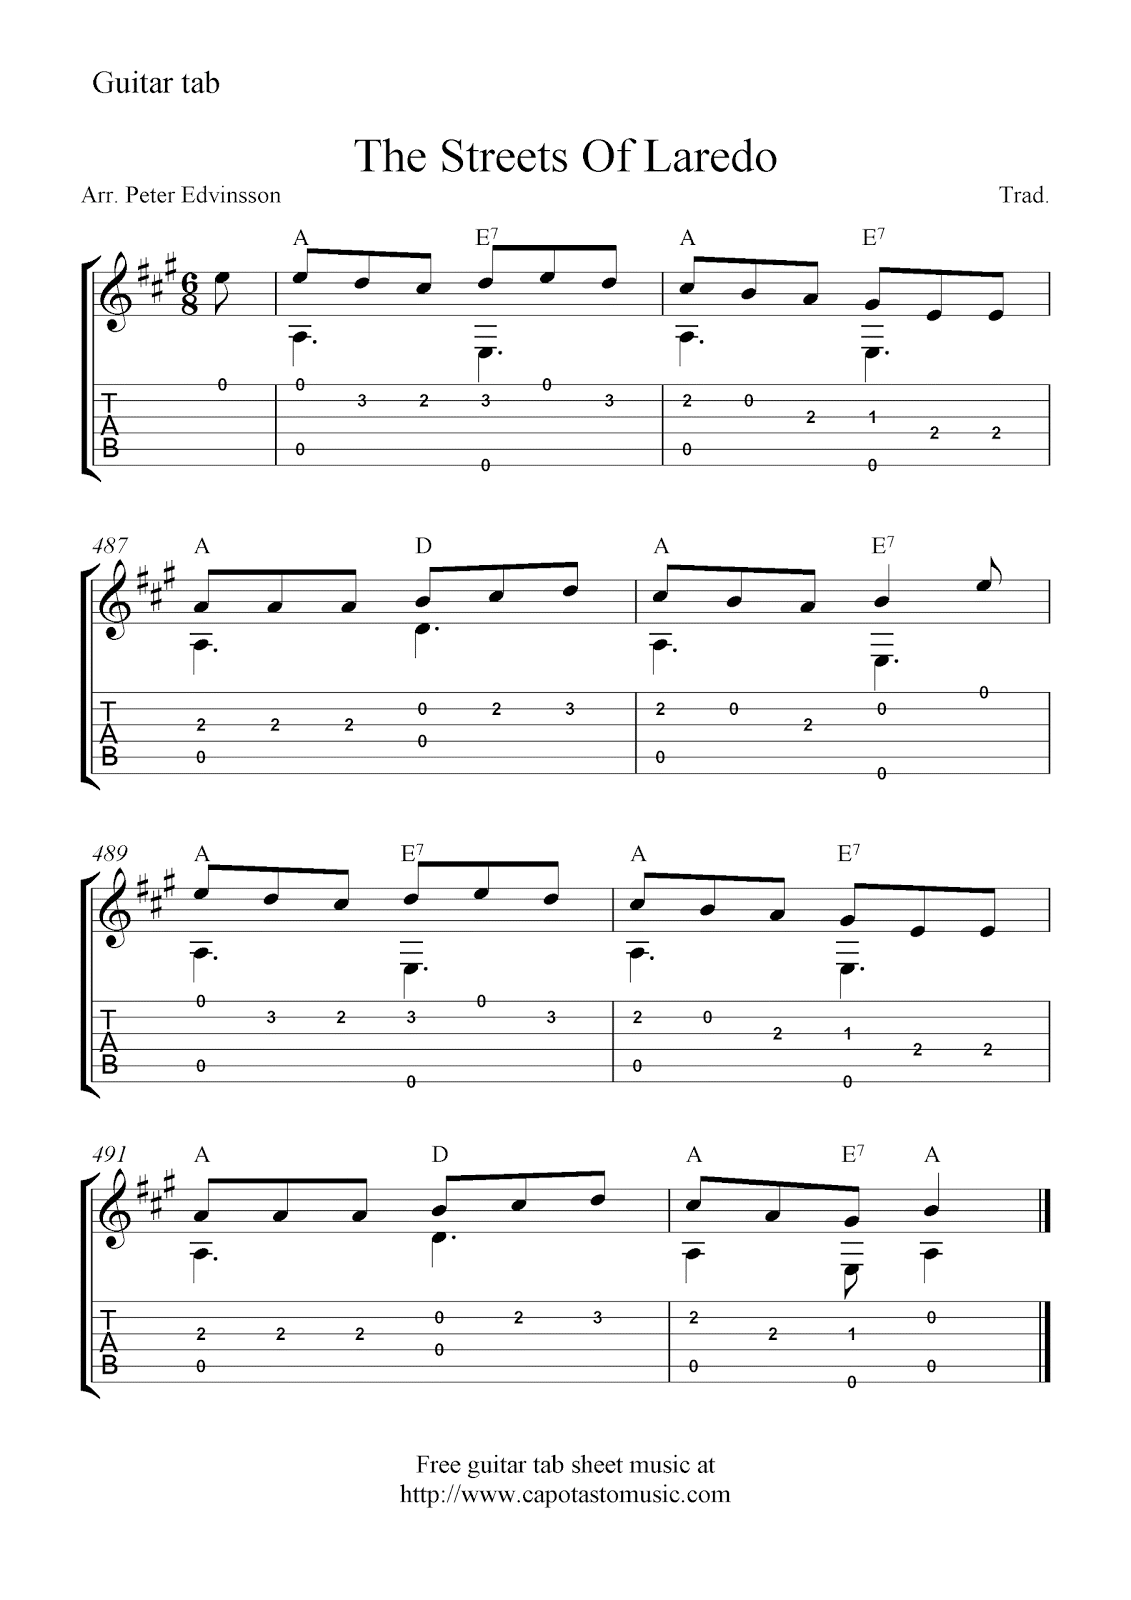 Free Easy Guitar Tabs Sheet Music Score The Streets Of Laredo